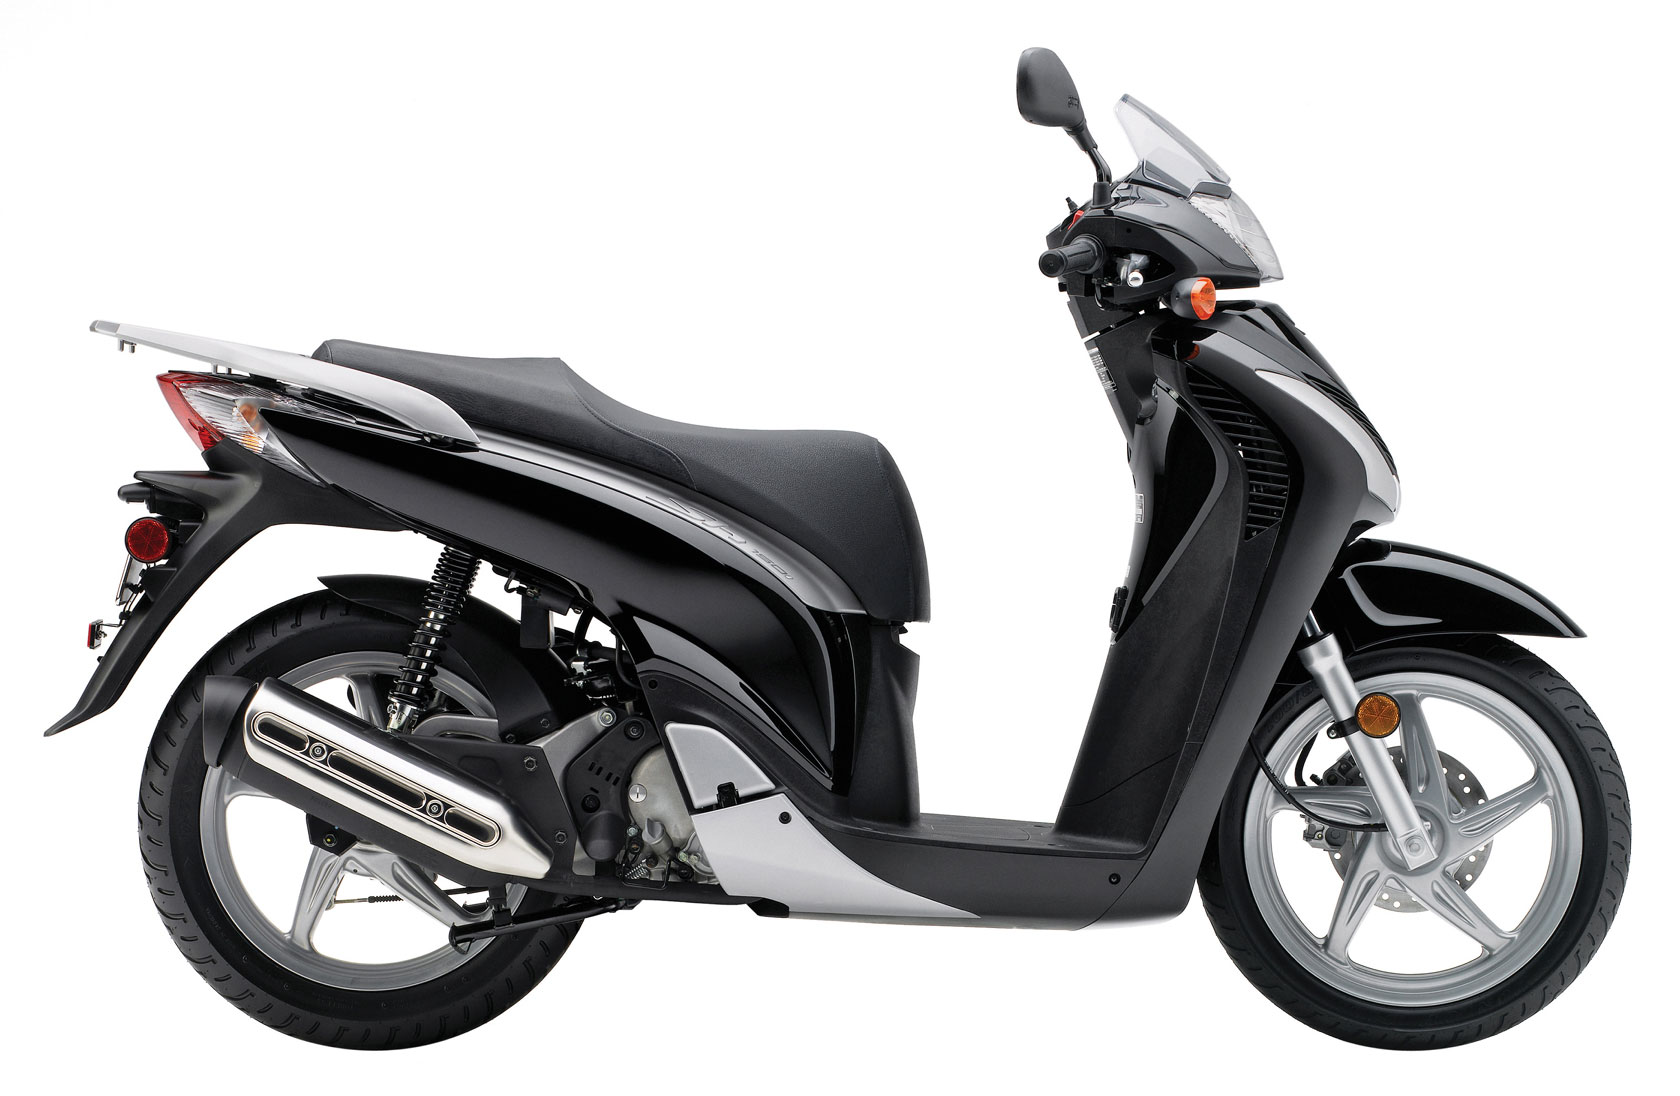 honda sh150i specs 2009 2010 autoevolution. Black Bedroom Furniture Sets. Home Design Ideas